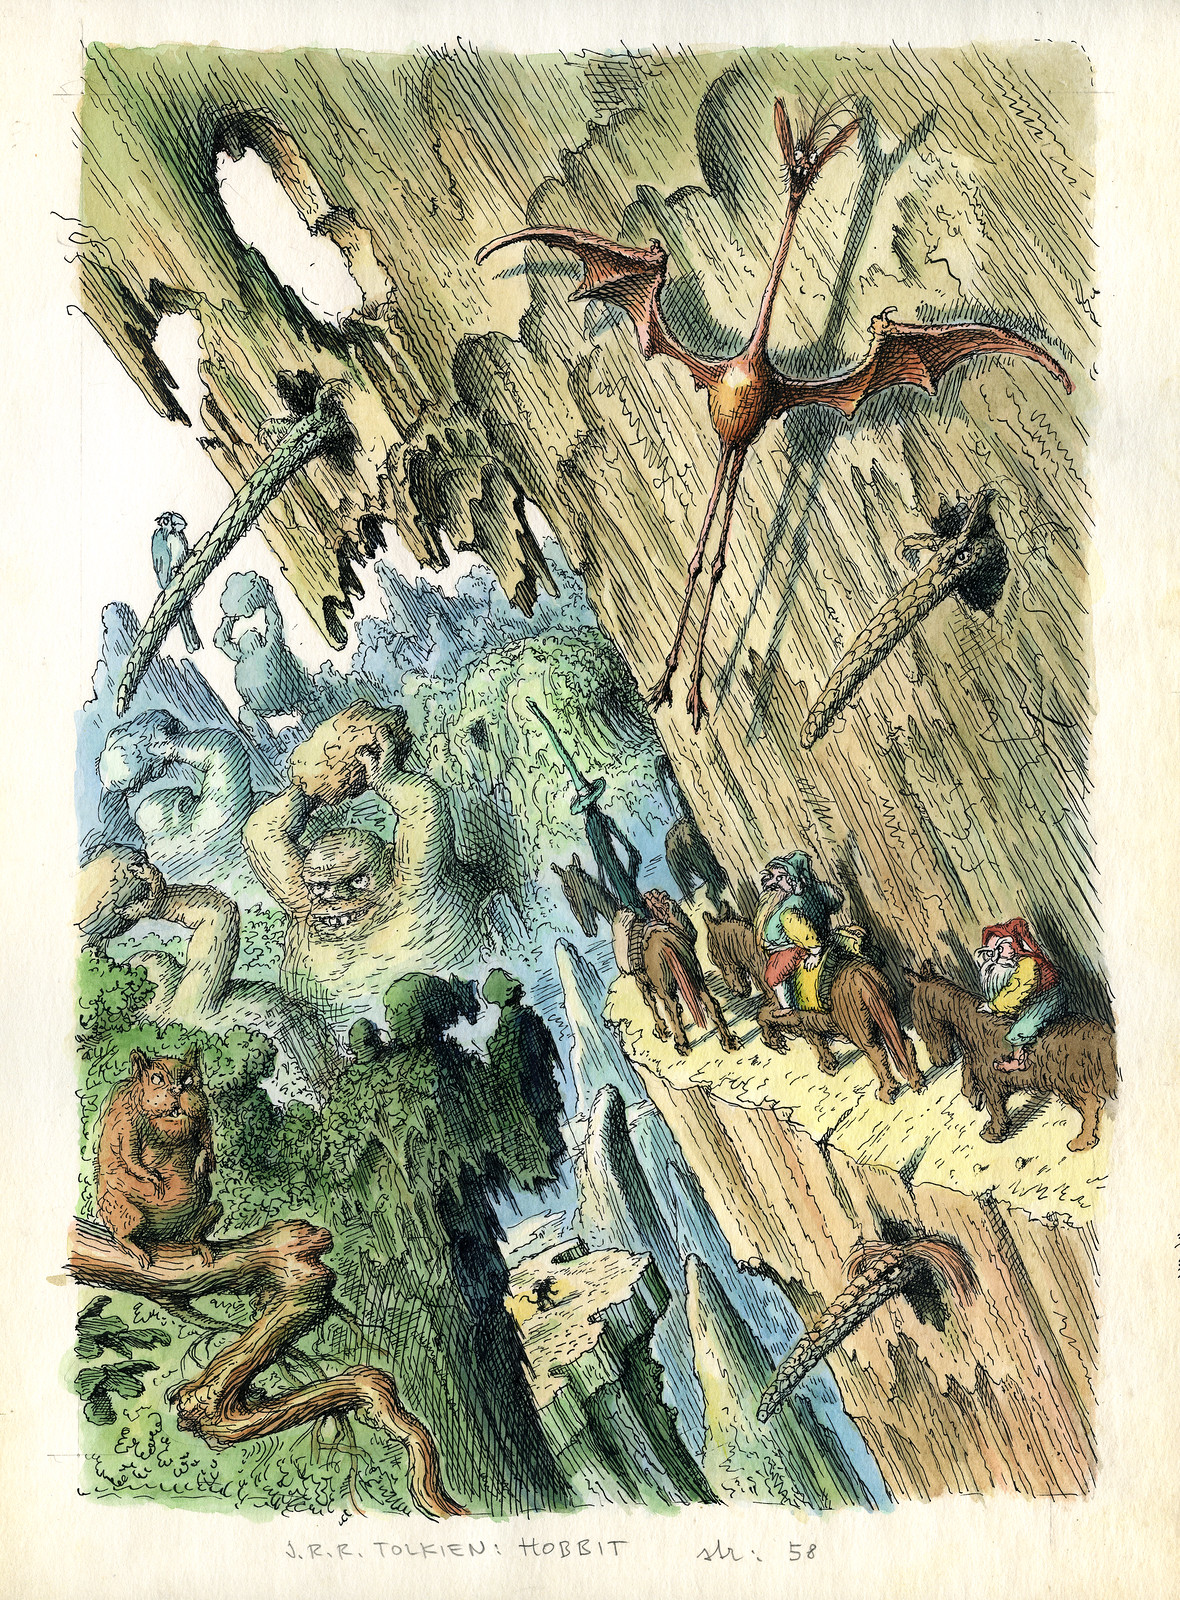 Peter Klucik -The Hobbit, Illustration 05